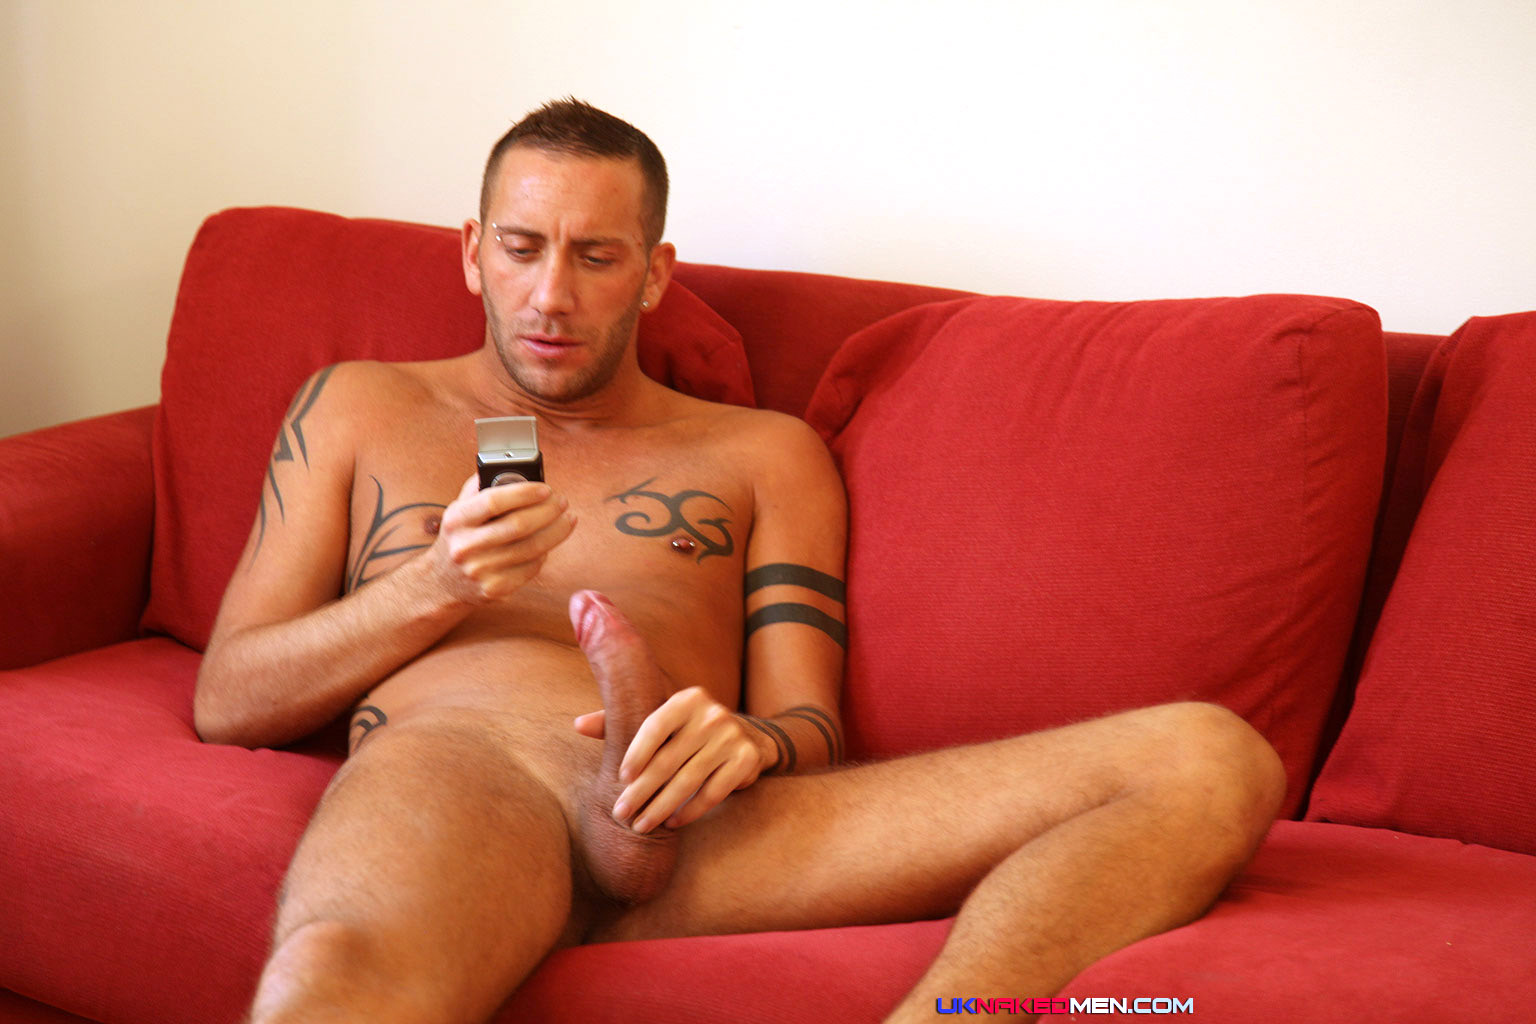 UKNakedmen Diego and Romeo torrent ARAB cock 16 Big Cock Arab Shoots a Cum Load all over British Mans Face